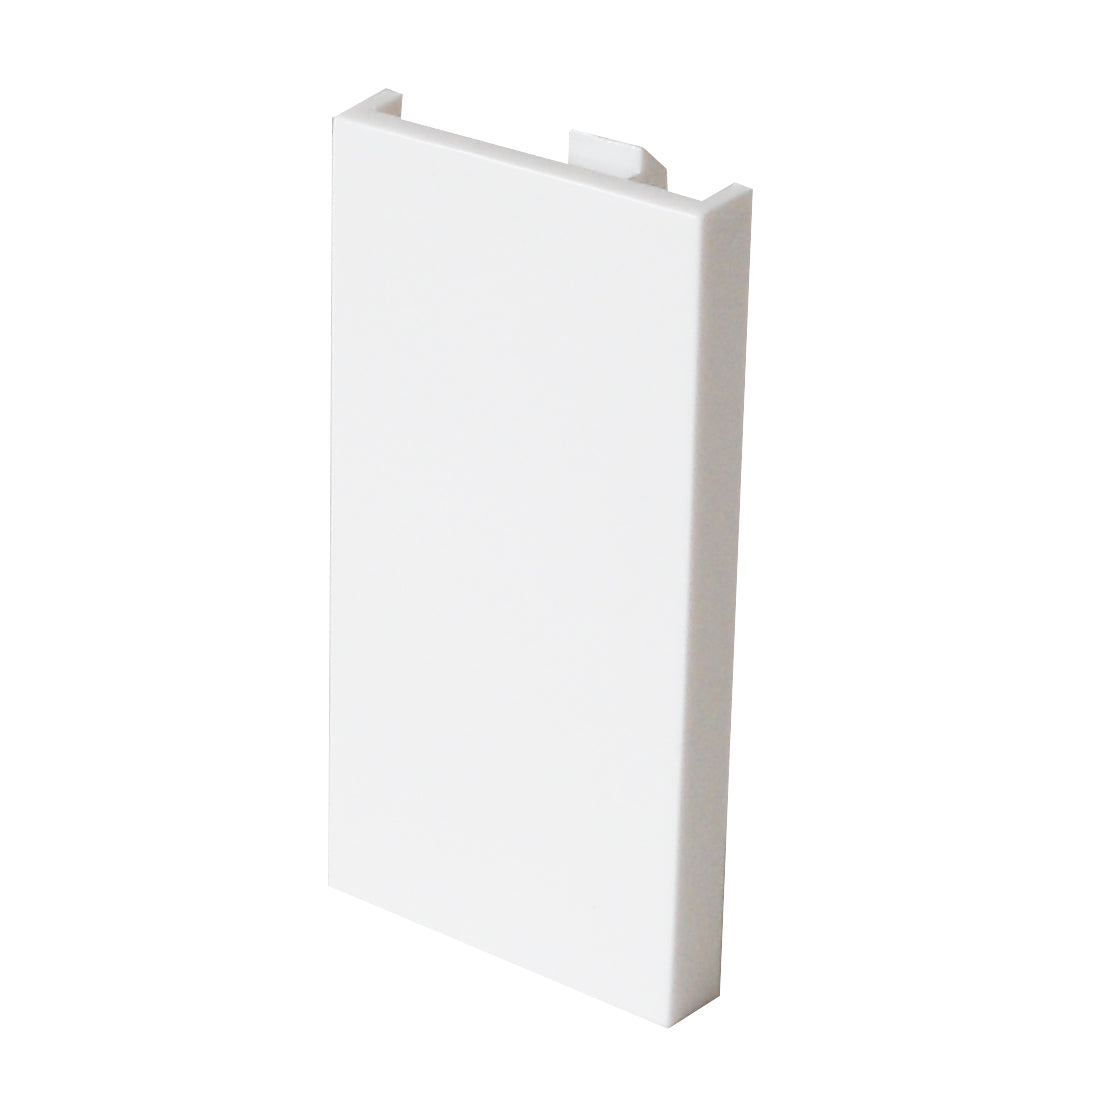 white single blanking plate